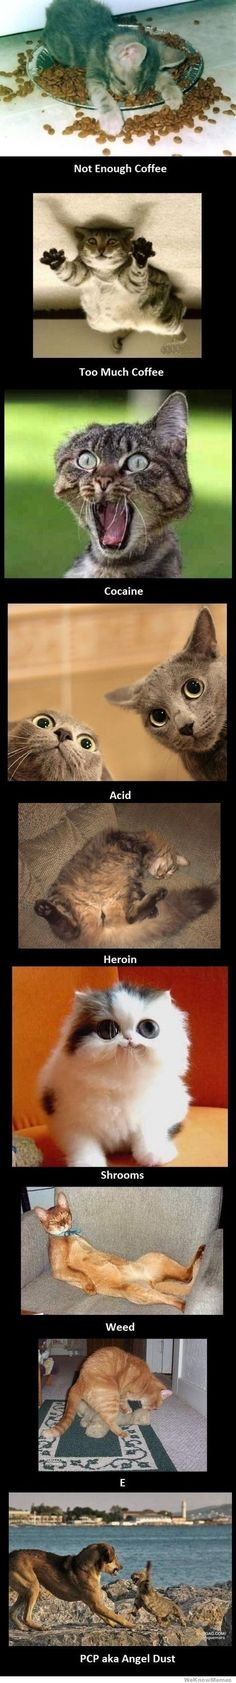 your cat on drugs